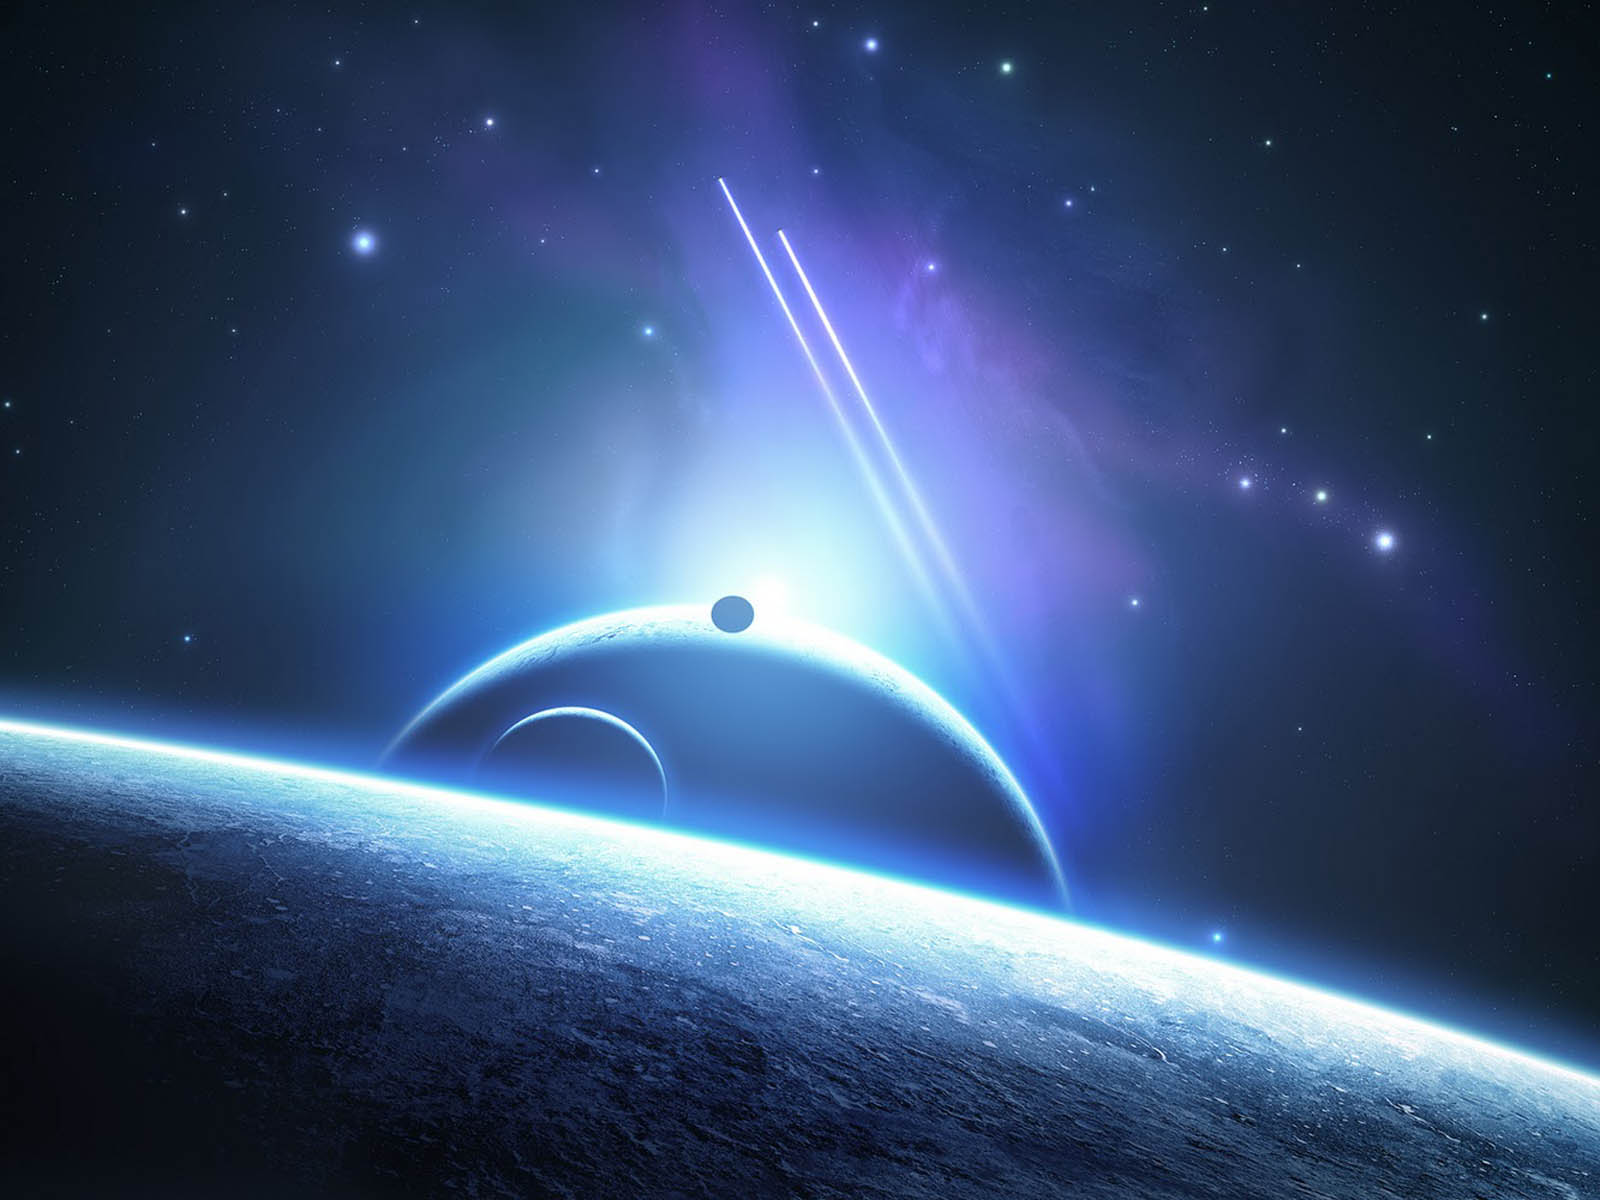 Outer Space Wallpapers, Outer Space Desktop Wallpapers, Outer Space ...